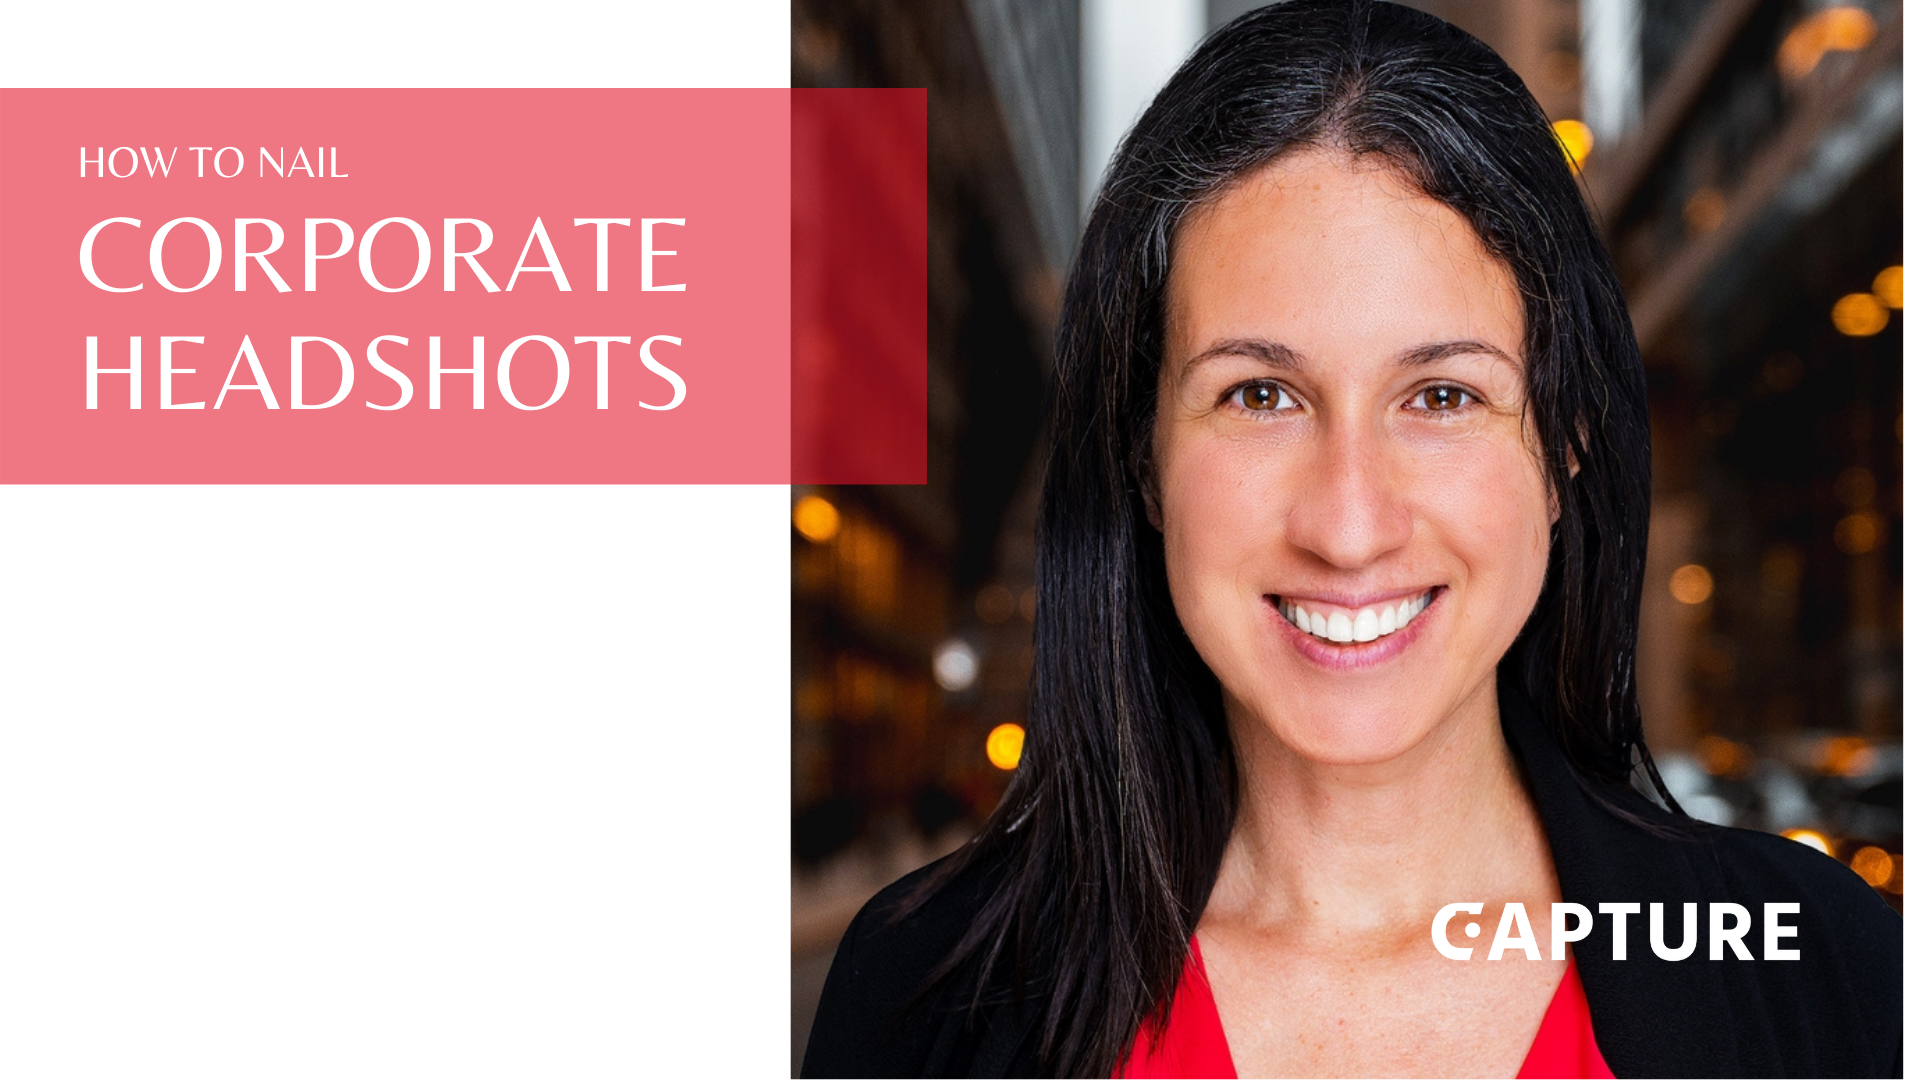 How To Get The Best Corporate Headshots - Everything You Need To Know